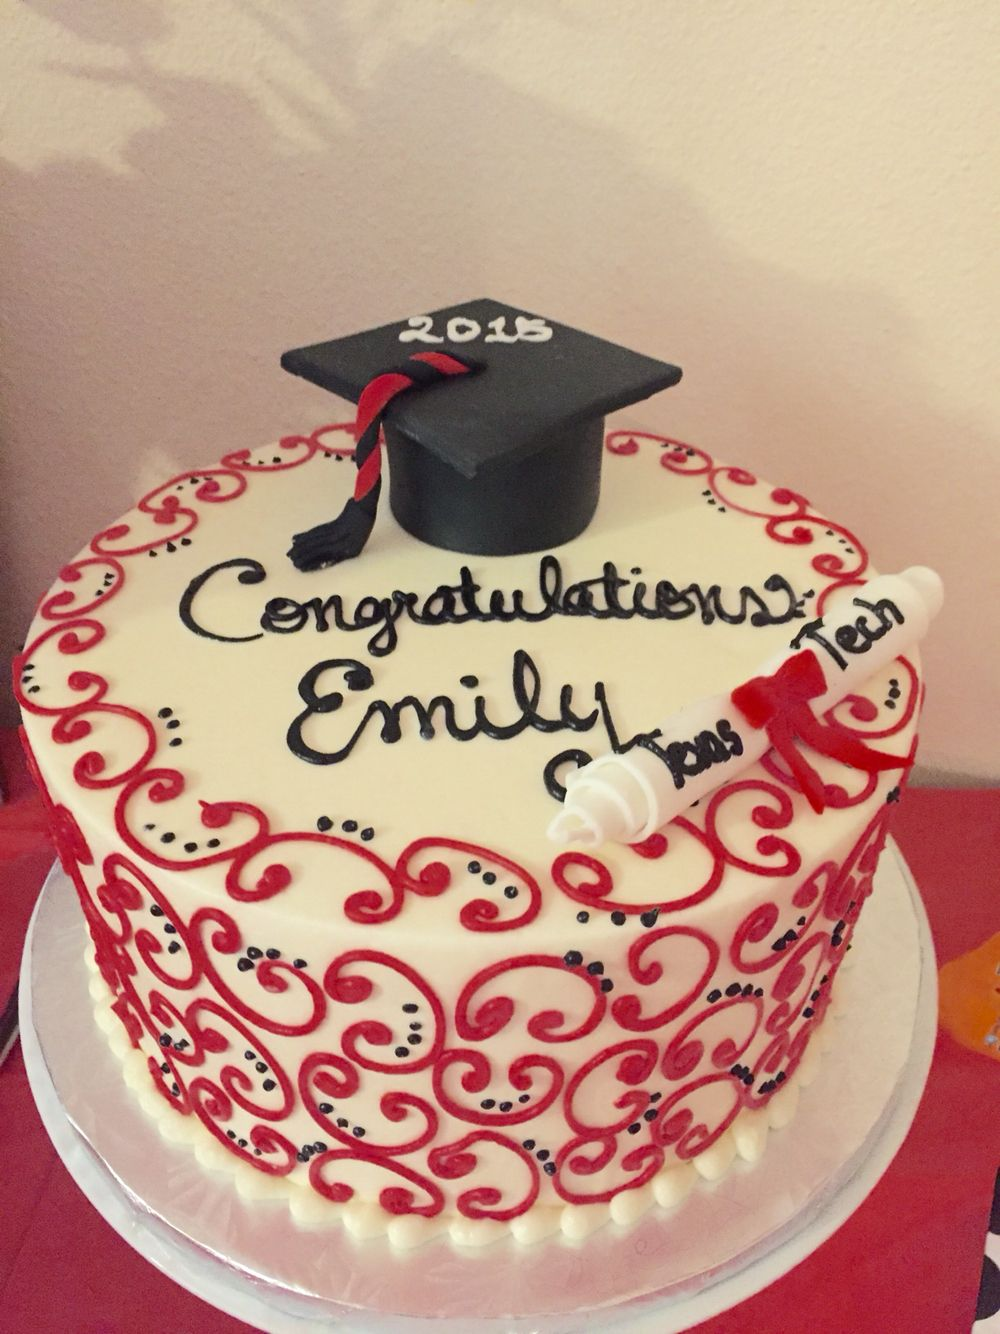 Cake Design For Matriculation : Texas Tech University cake- Simply Decadent Bakery ...